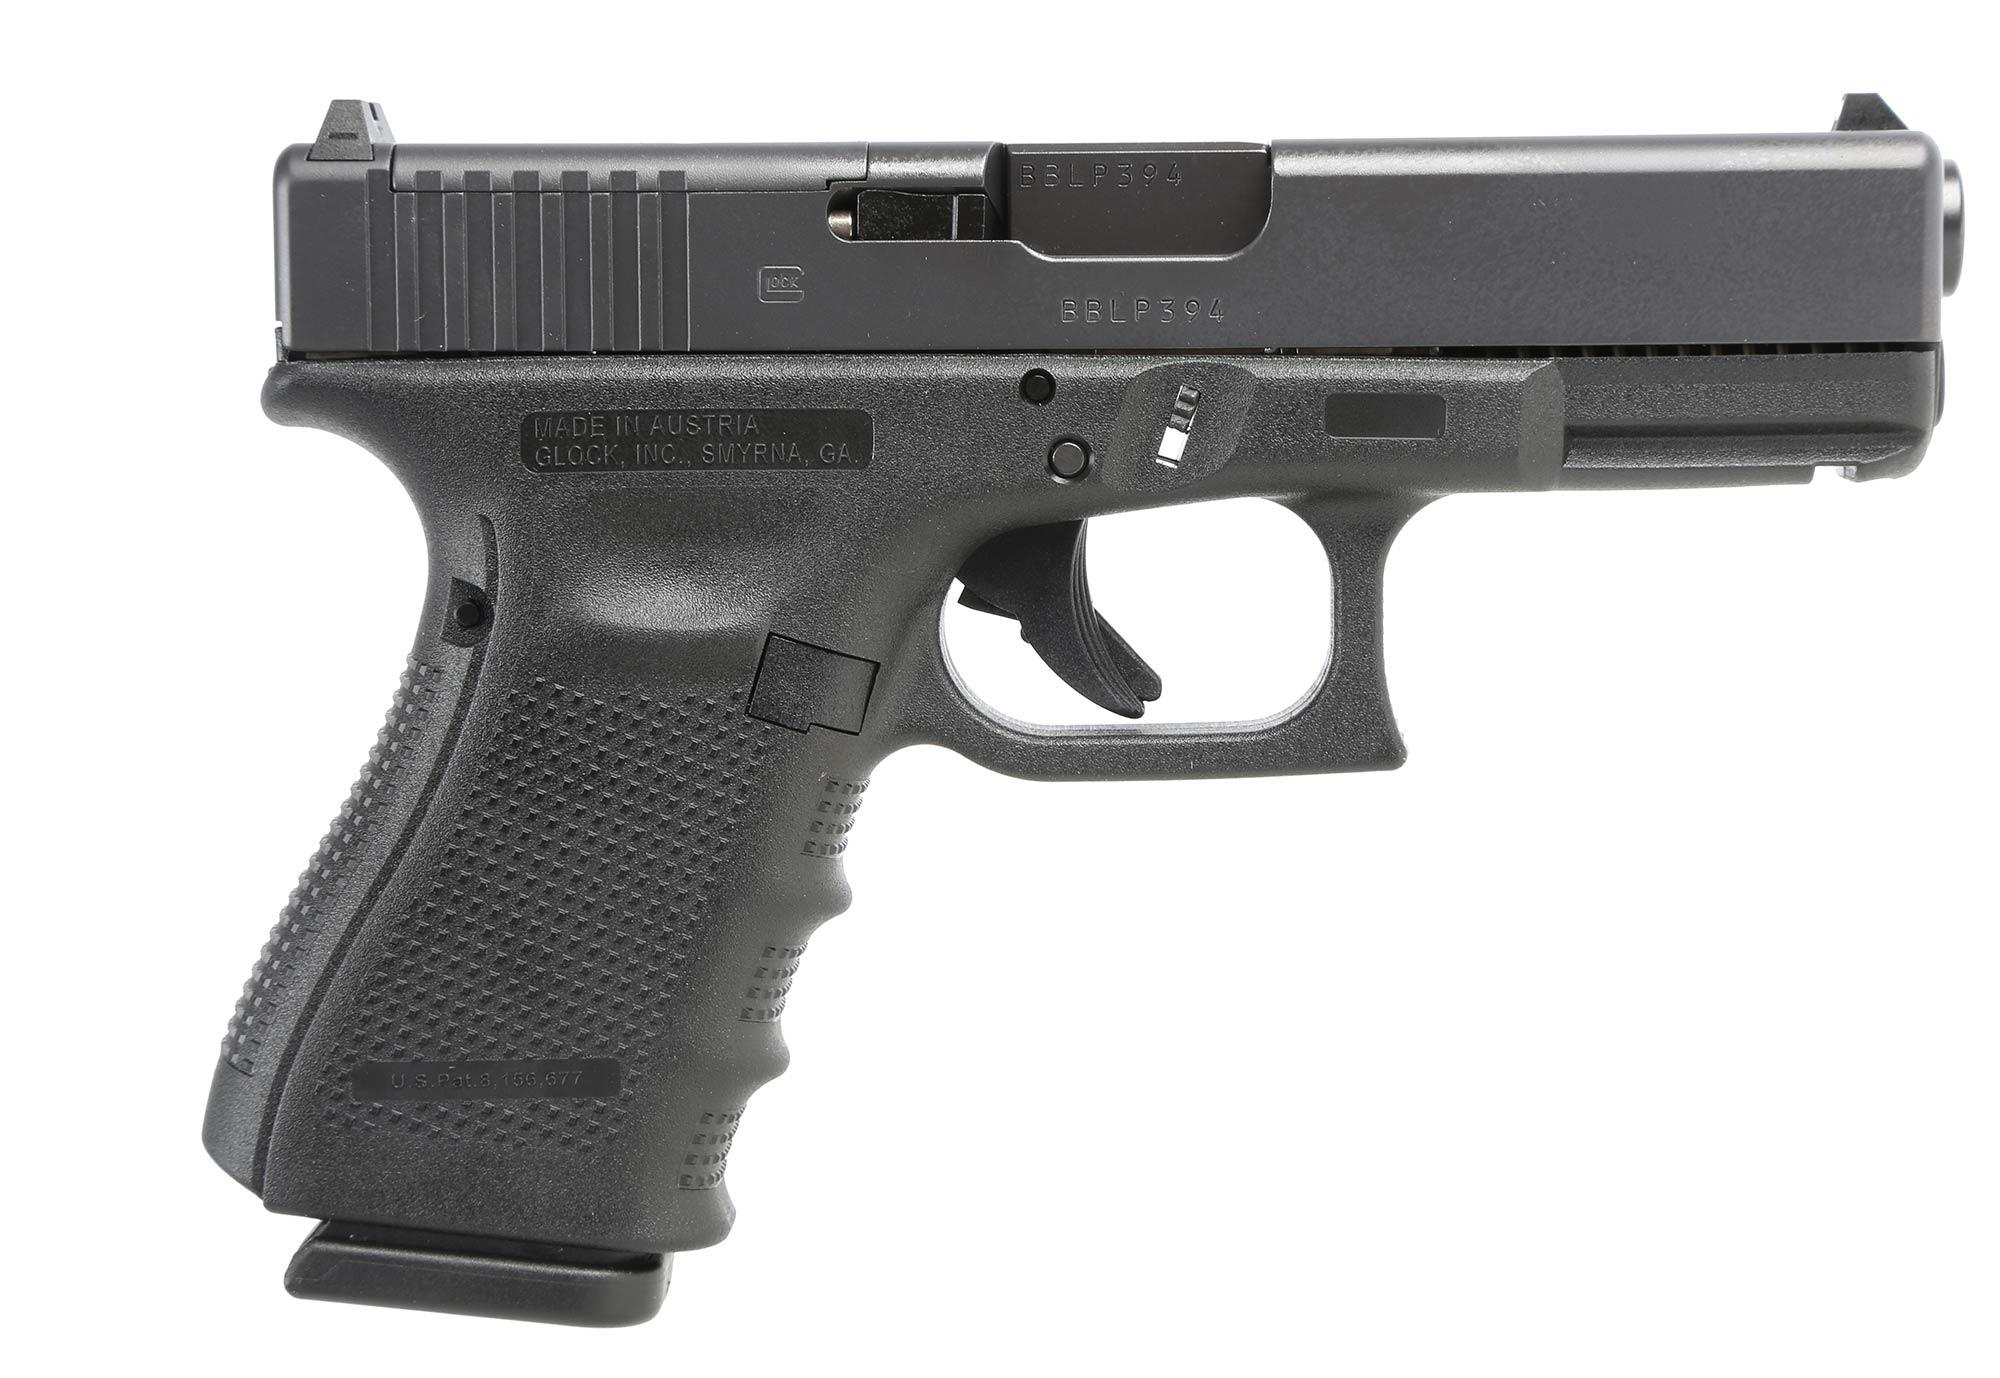 The Glock 19 Gen 4 MOS 9mm pistol comes with an adapter plate for mounting mini red dot sights